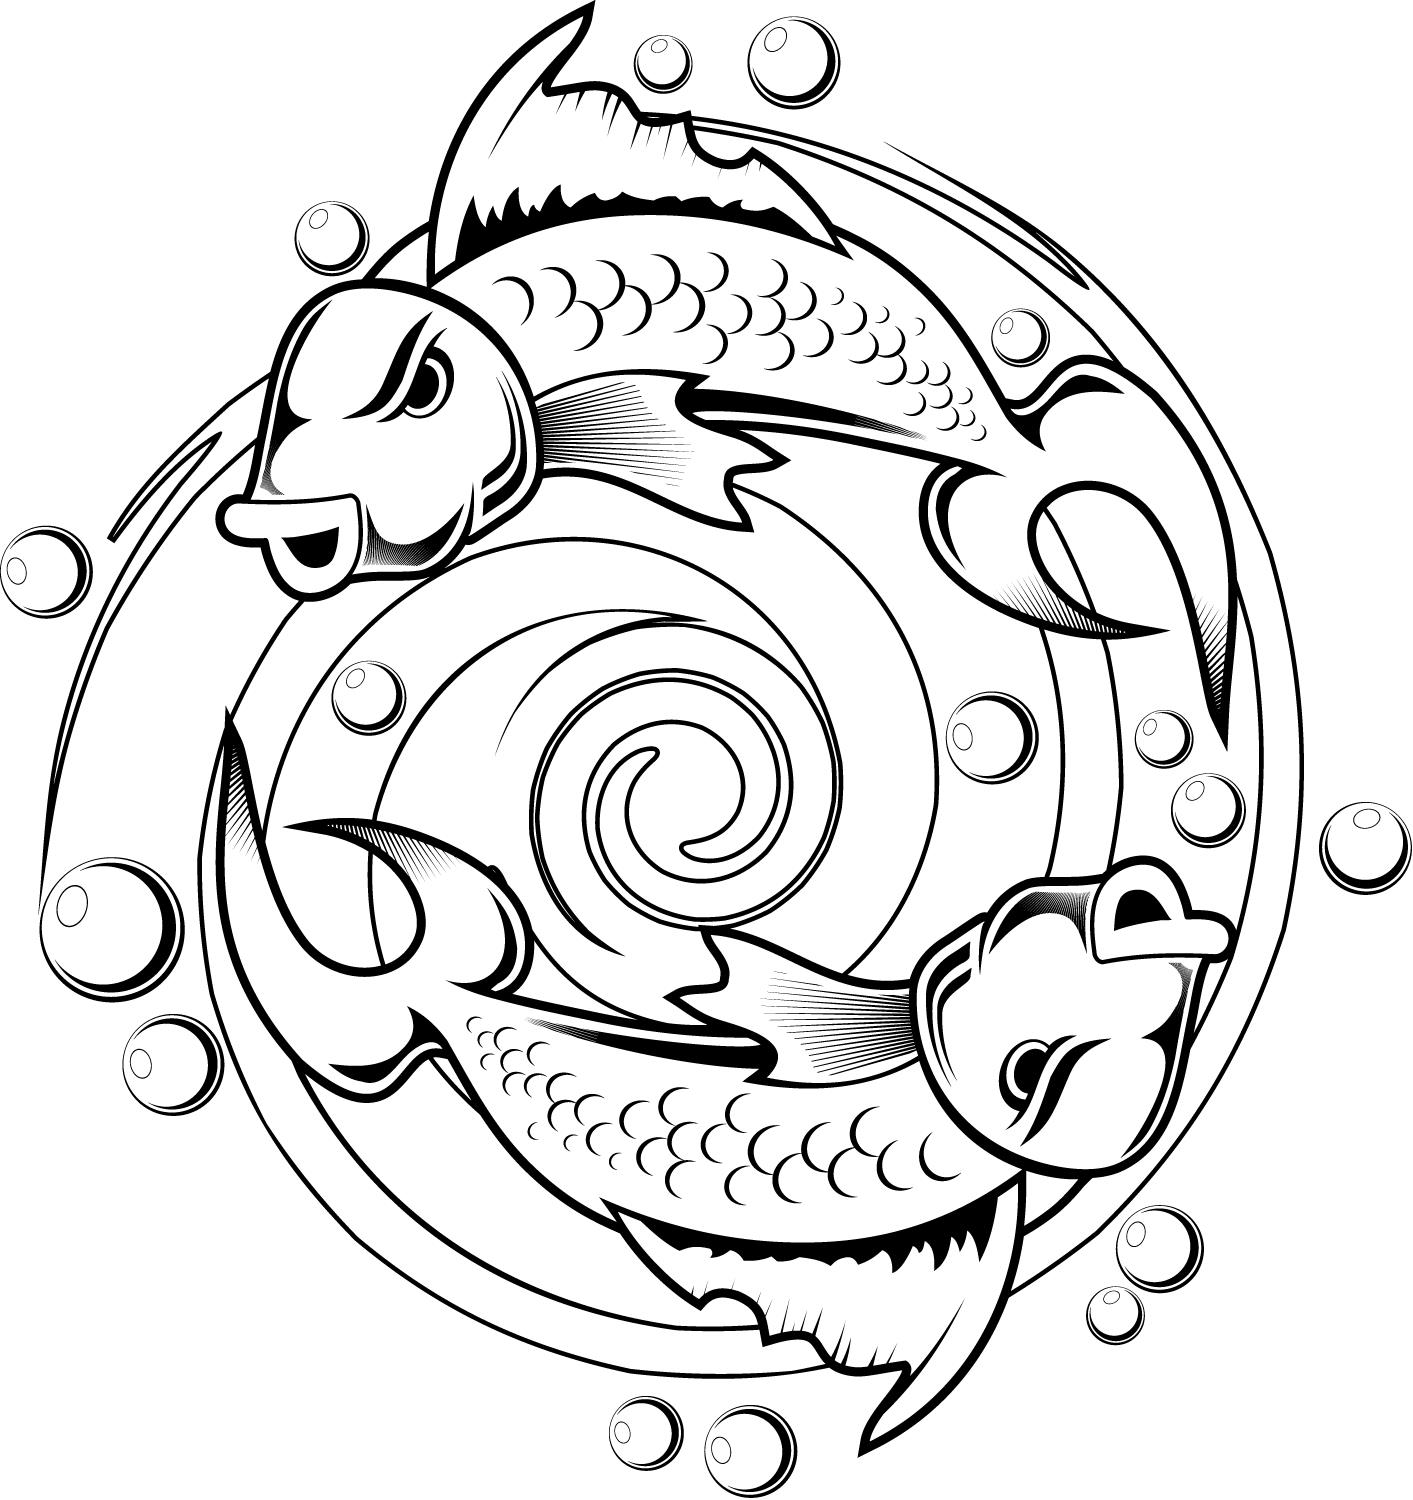 kids coloring pages of a koi fish tattoo design tattoobite com